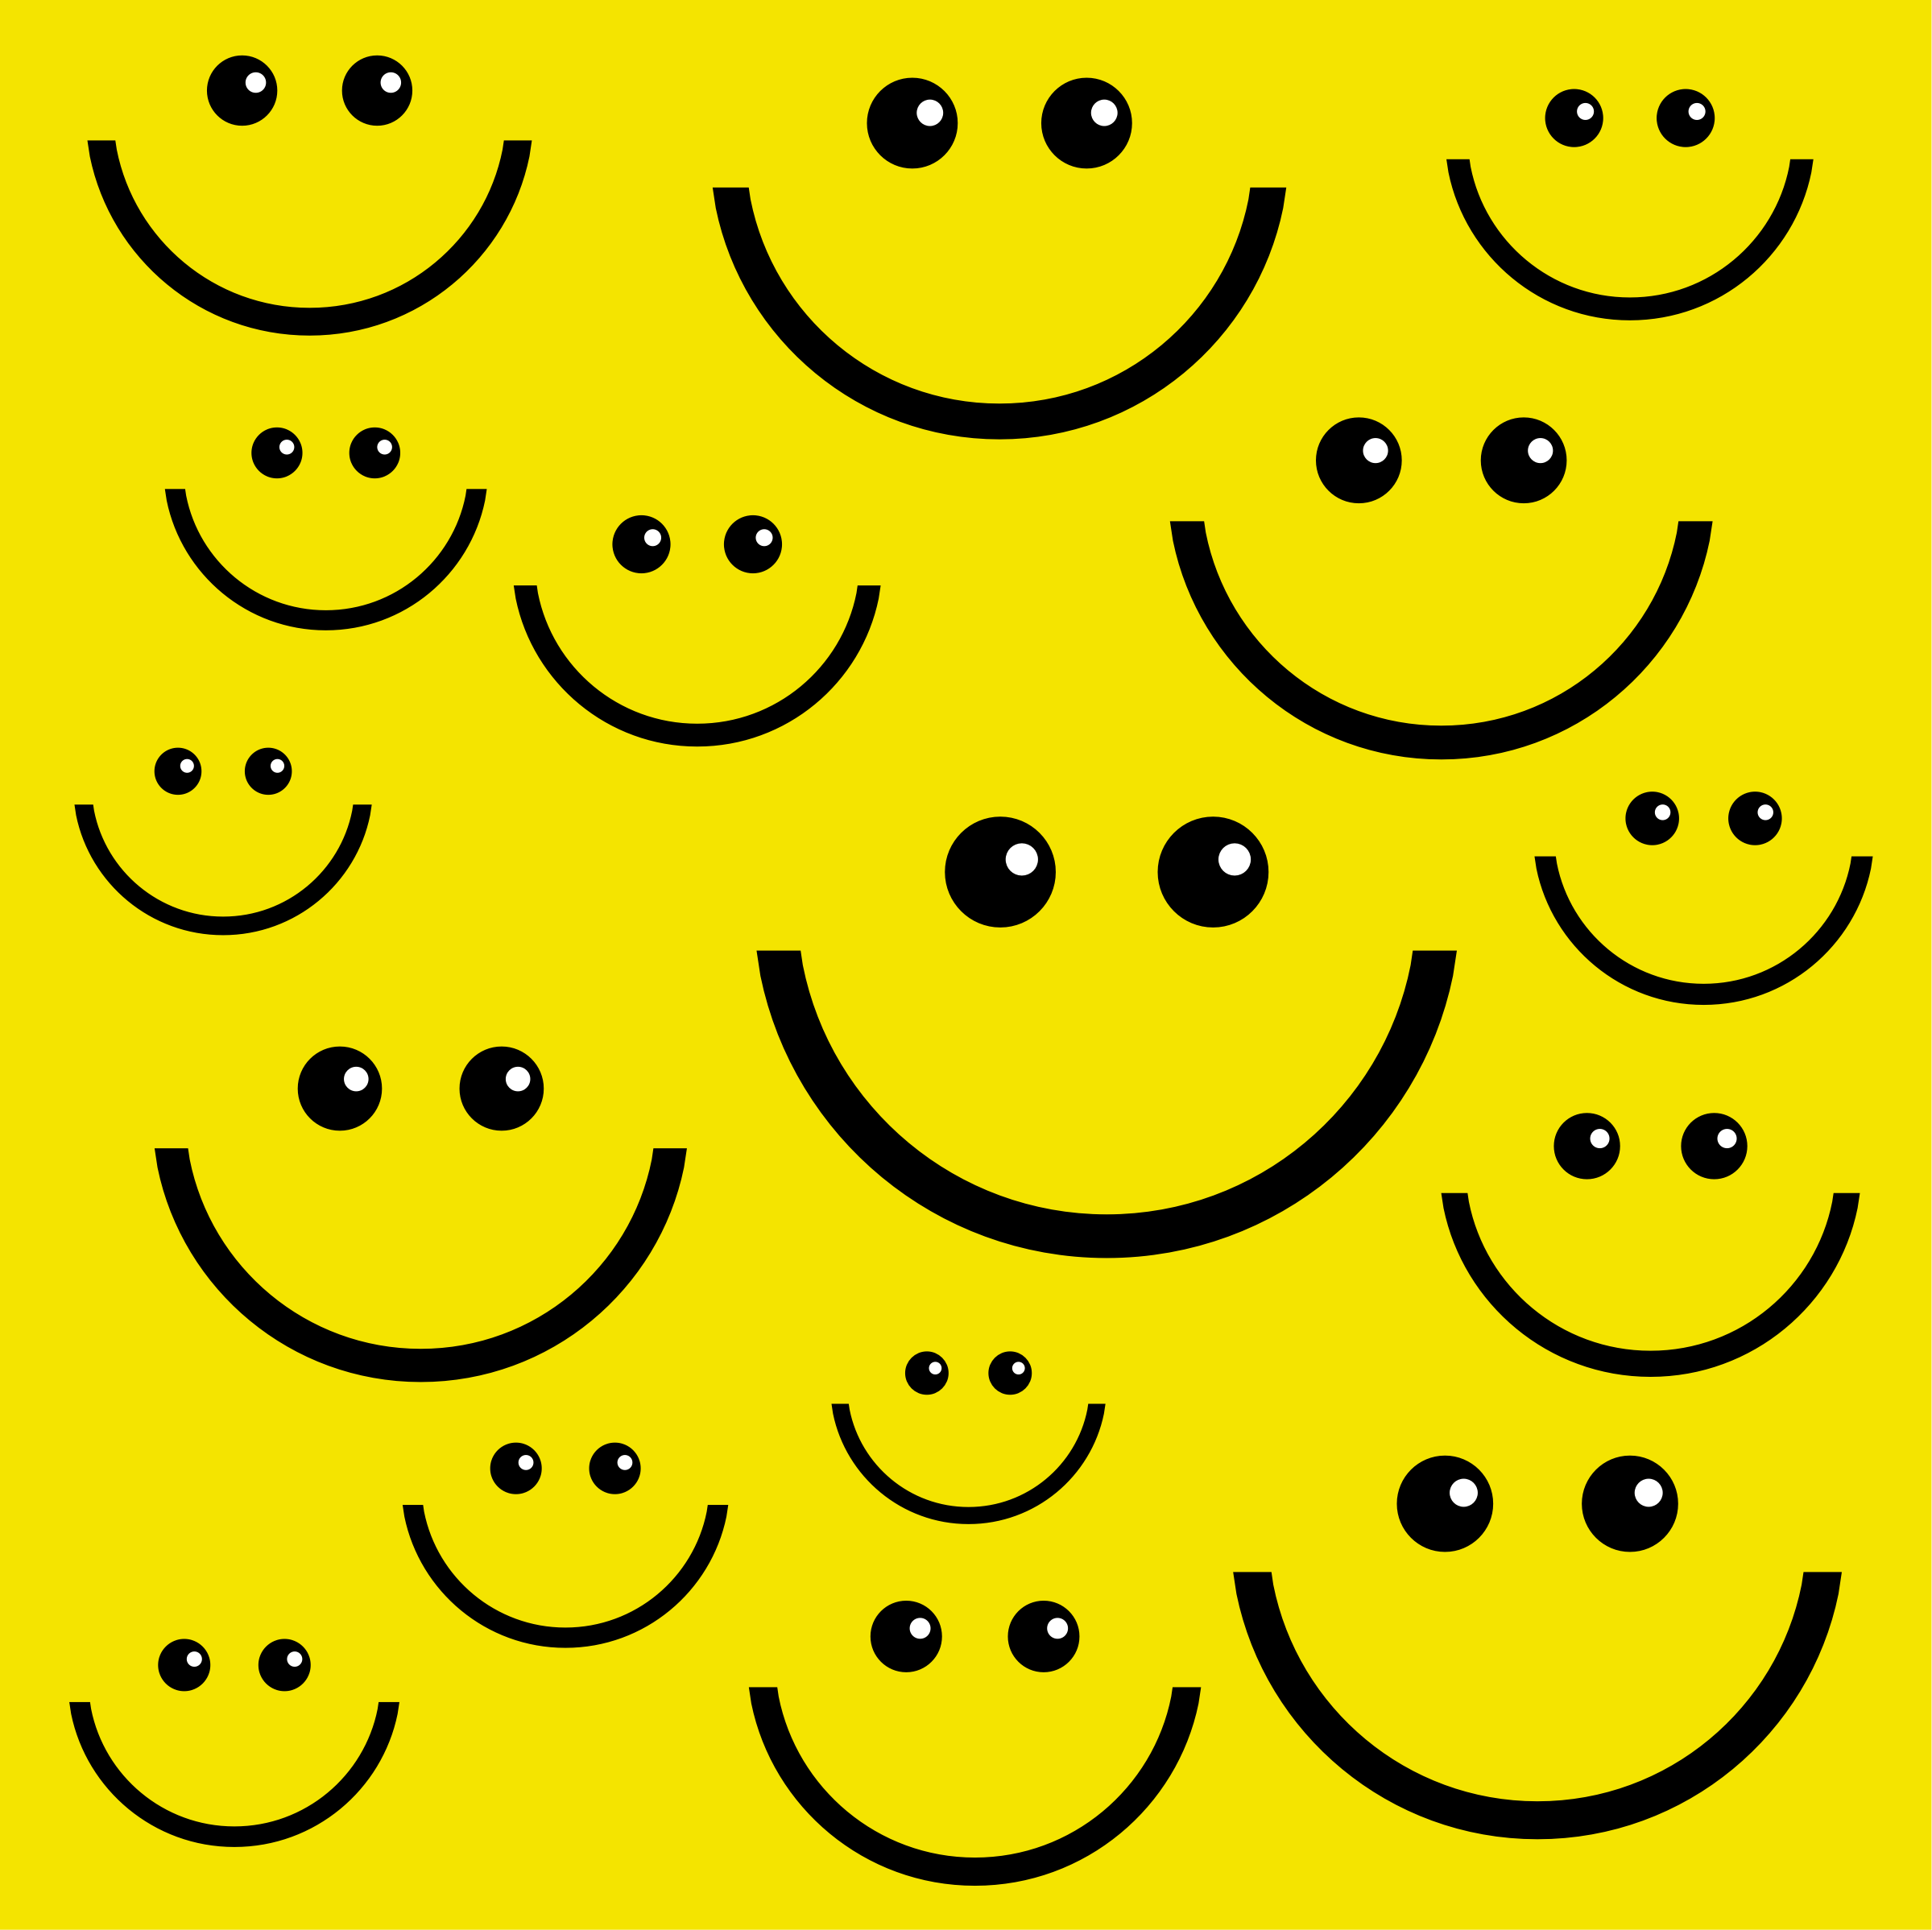 Smiley Face Background by Prawny